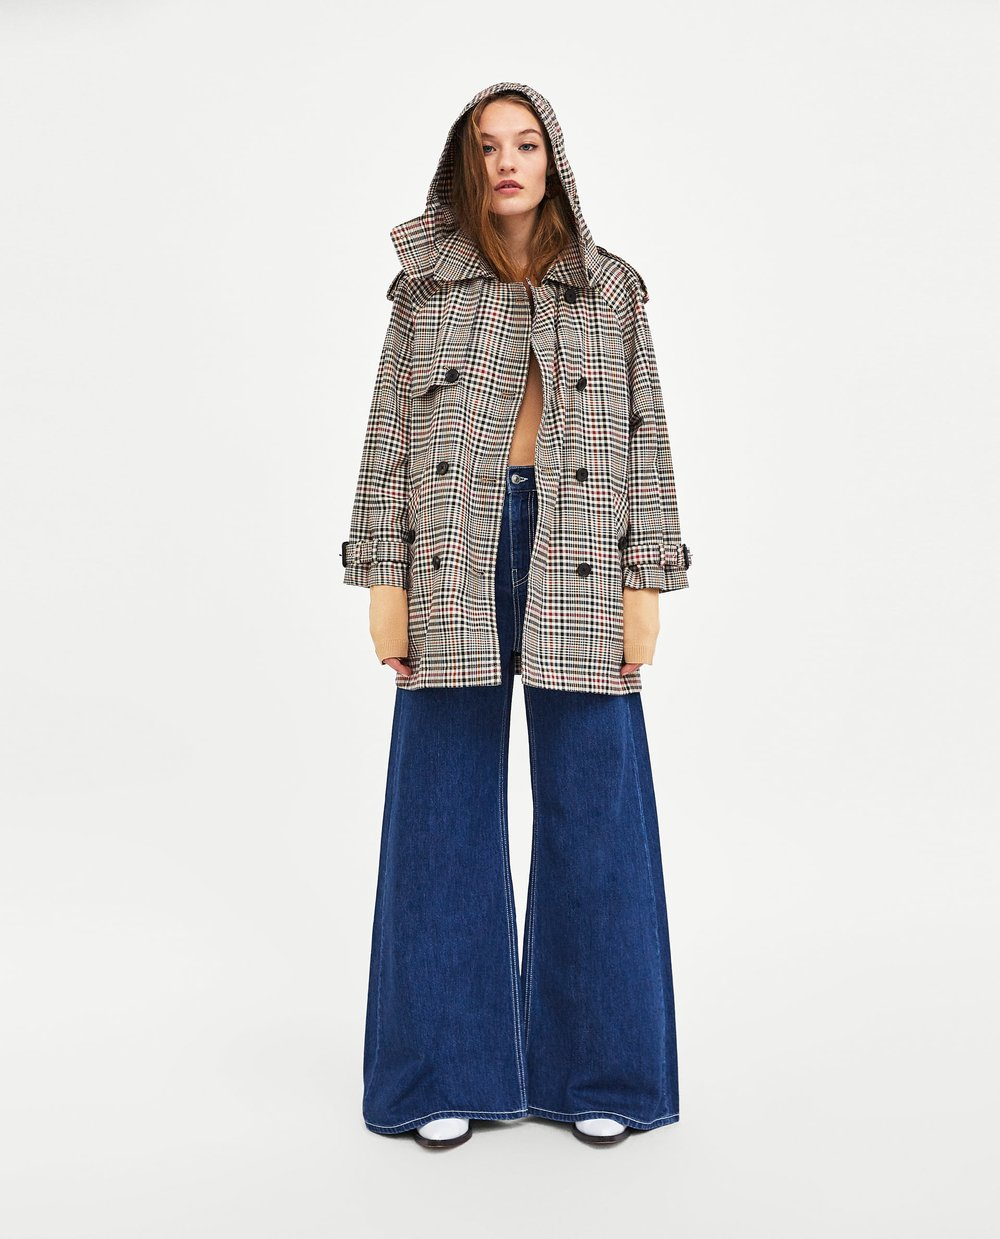 zara plaid trench.jpg